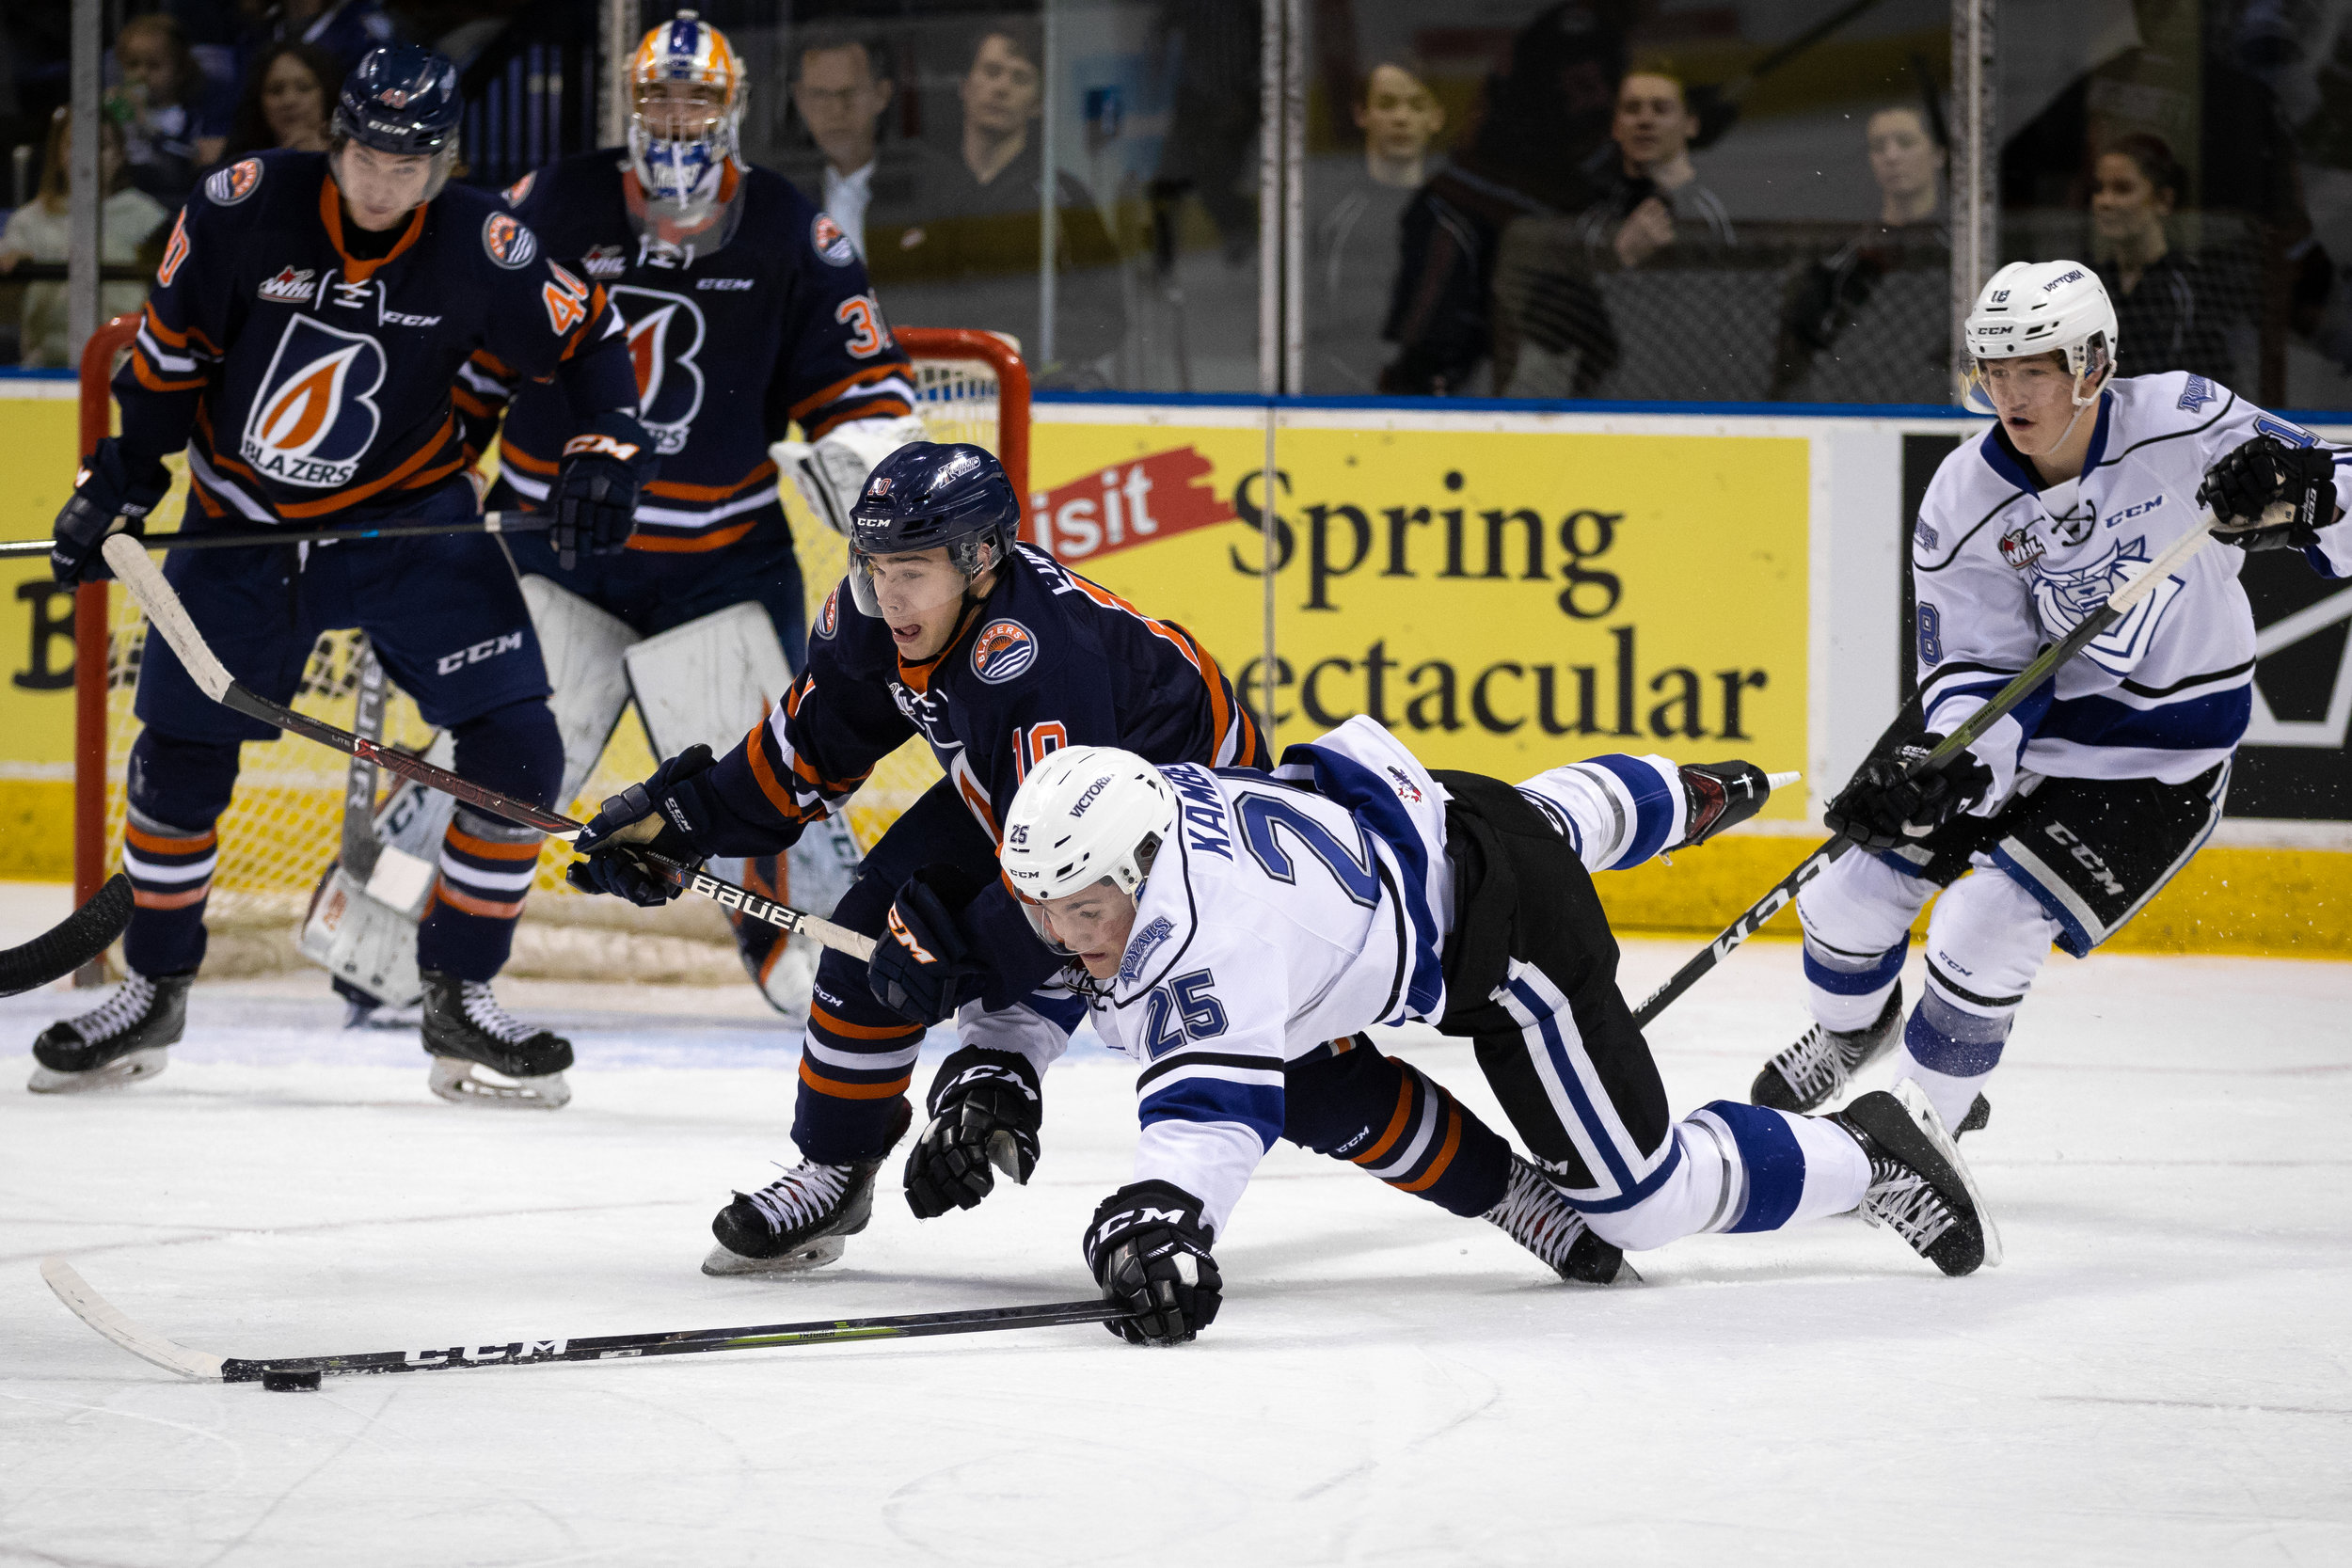 #25 Dino Kambeitz - Game 2 - WHL Playoffs 2019 Victoria Royals VS Kamloops Blazers - March 23 2019 (4-3 Loss). Photo by Jay Wallace-20311.jpg